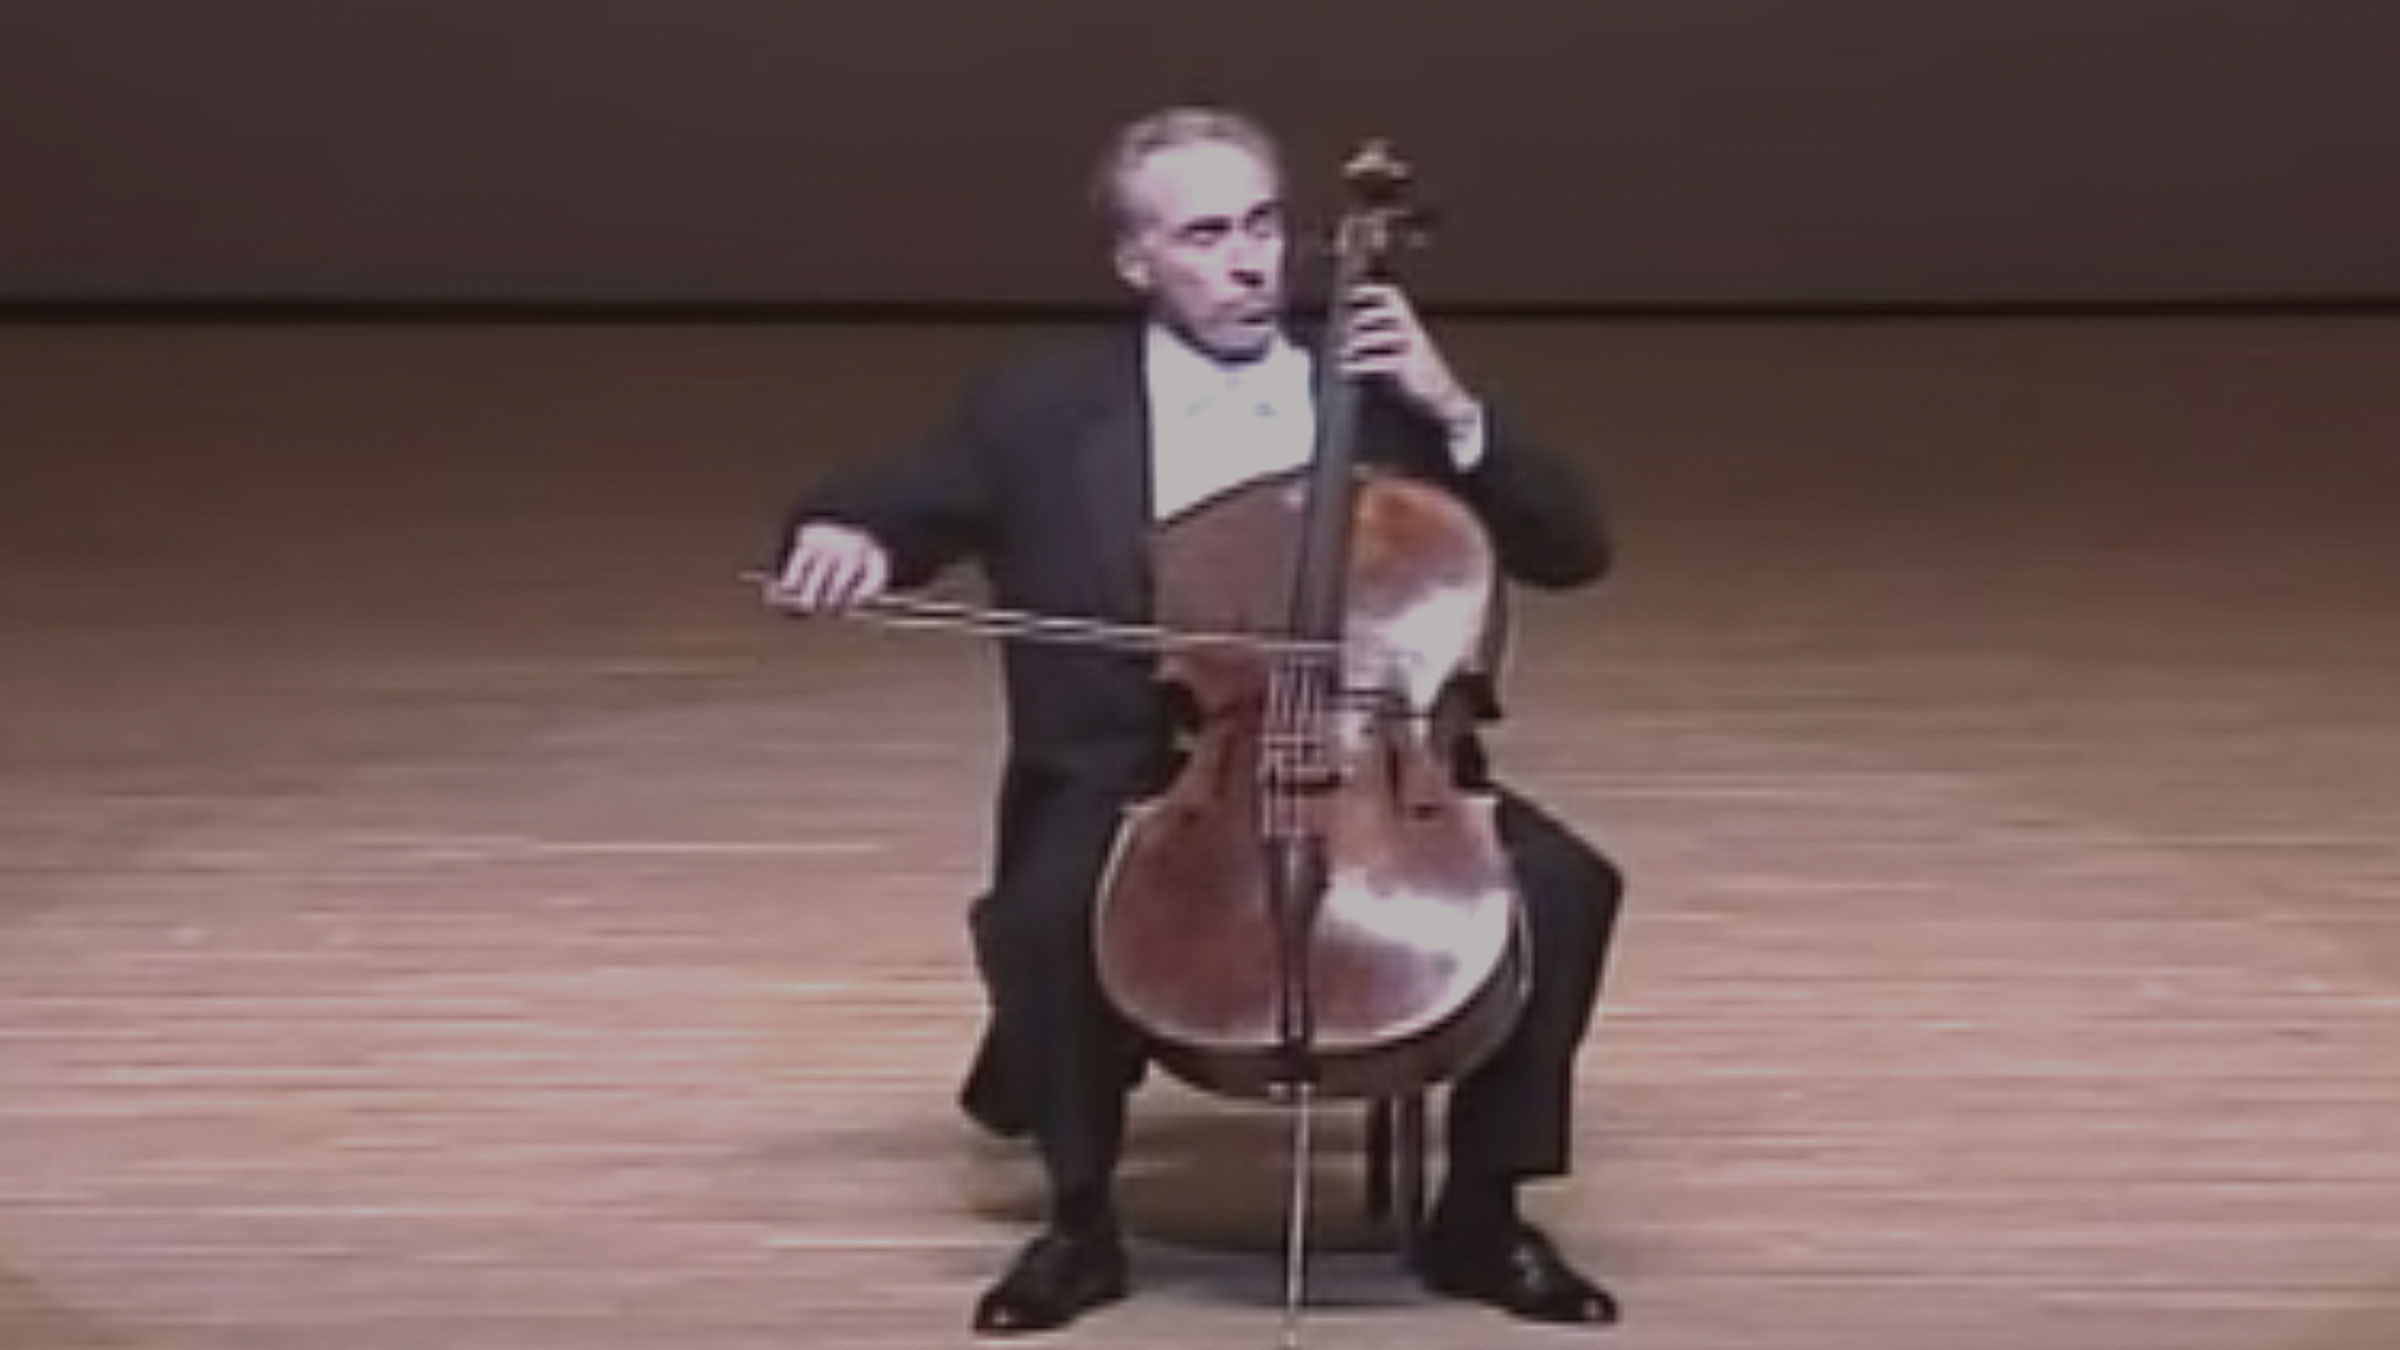 Bach Suite #1 in G major Prelude / Nathaniel Rosen Violoncello Recital Yamanashi,Japan